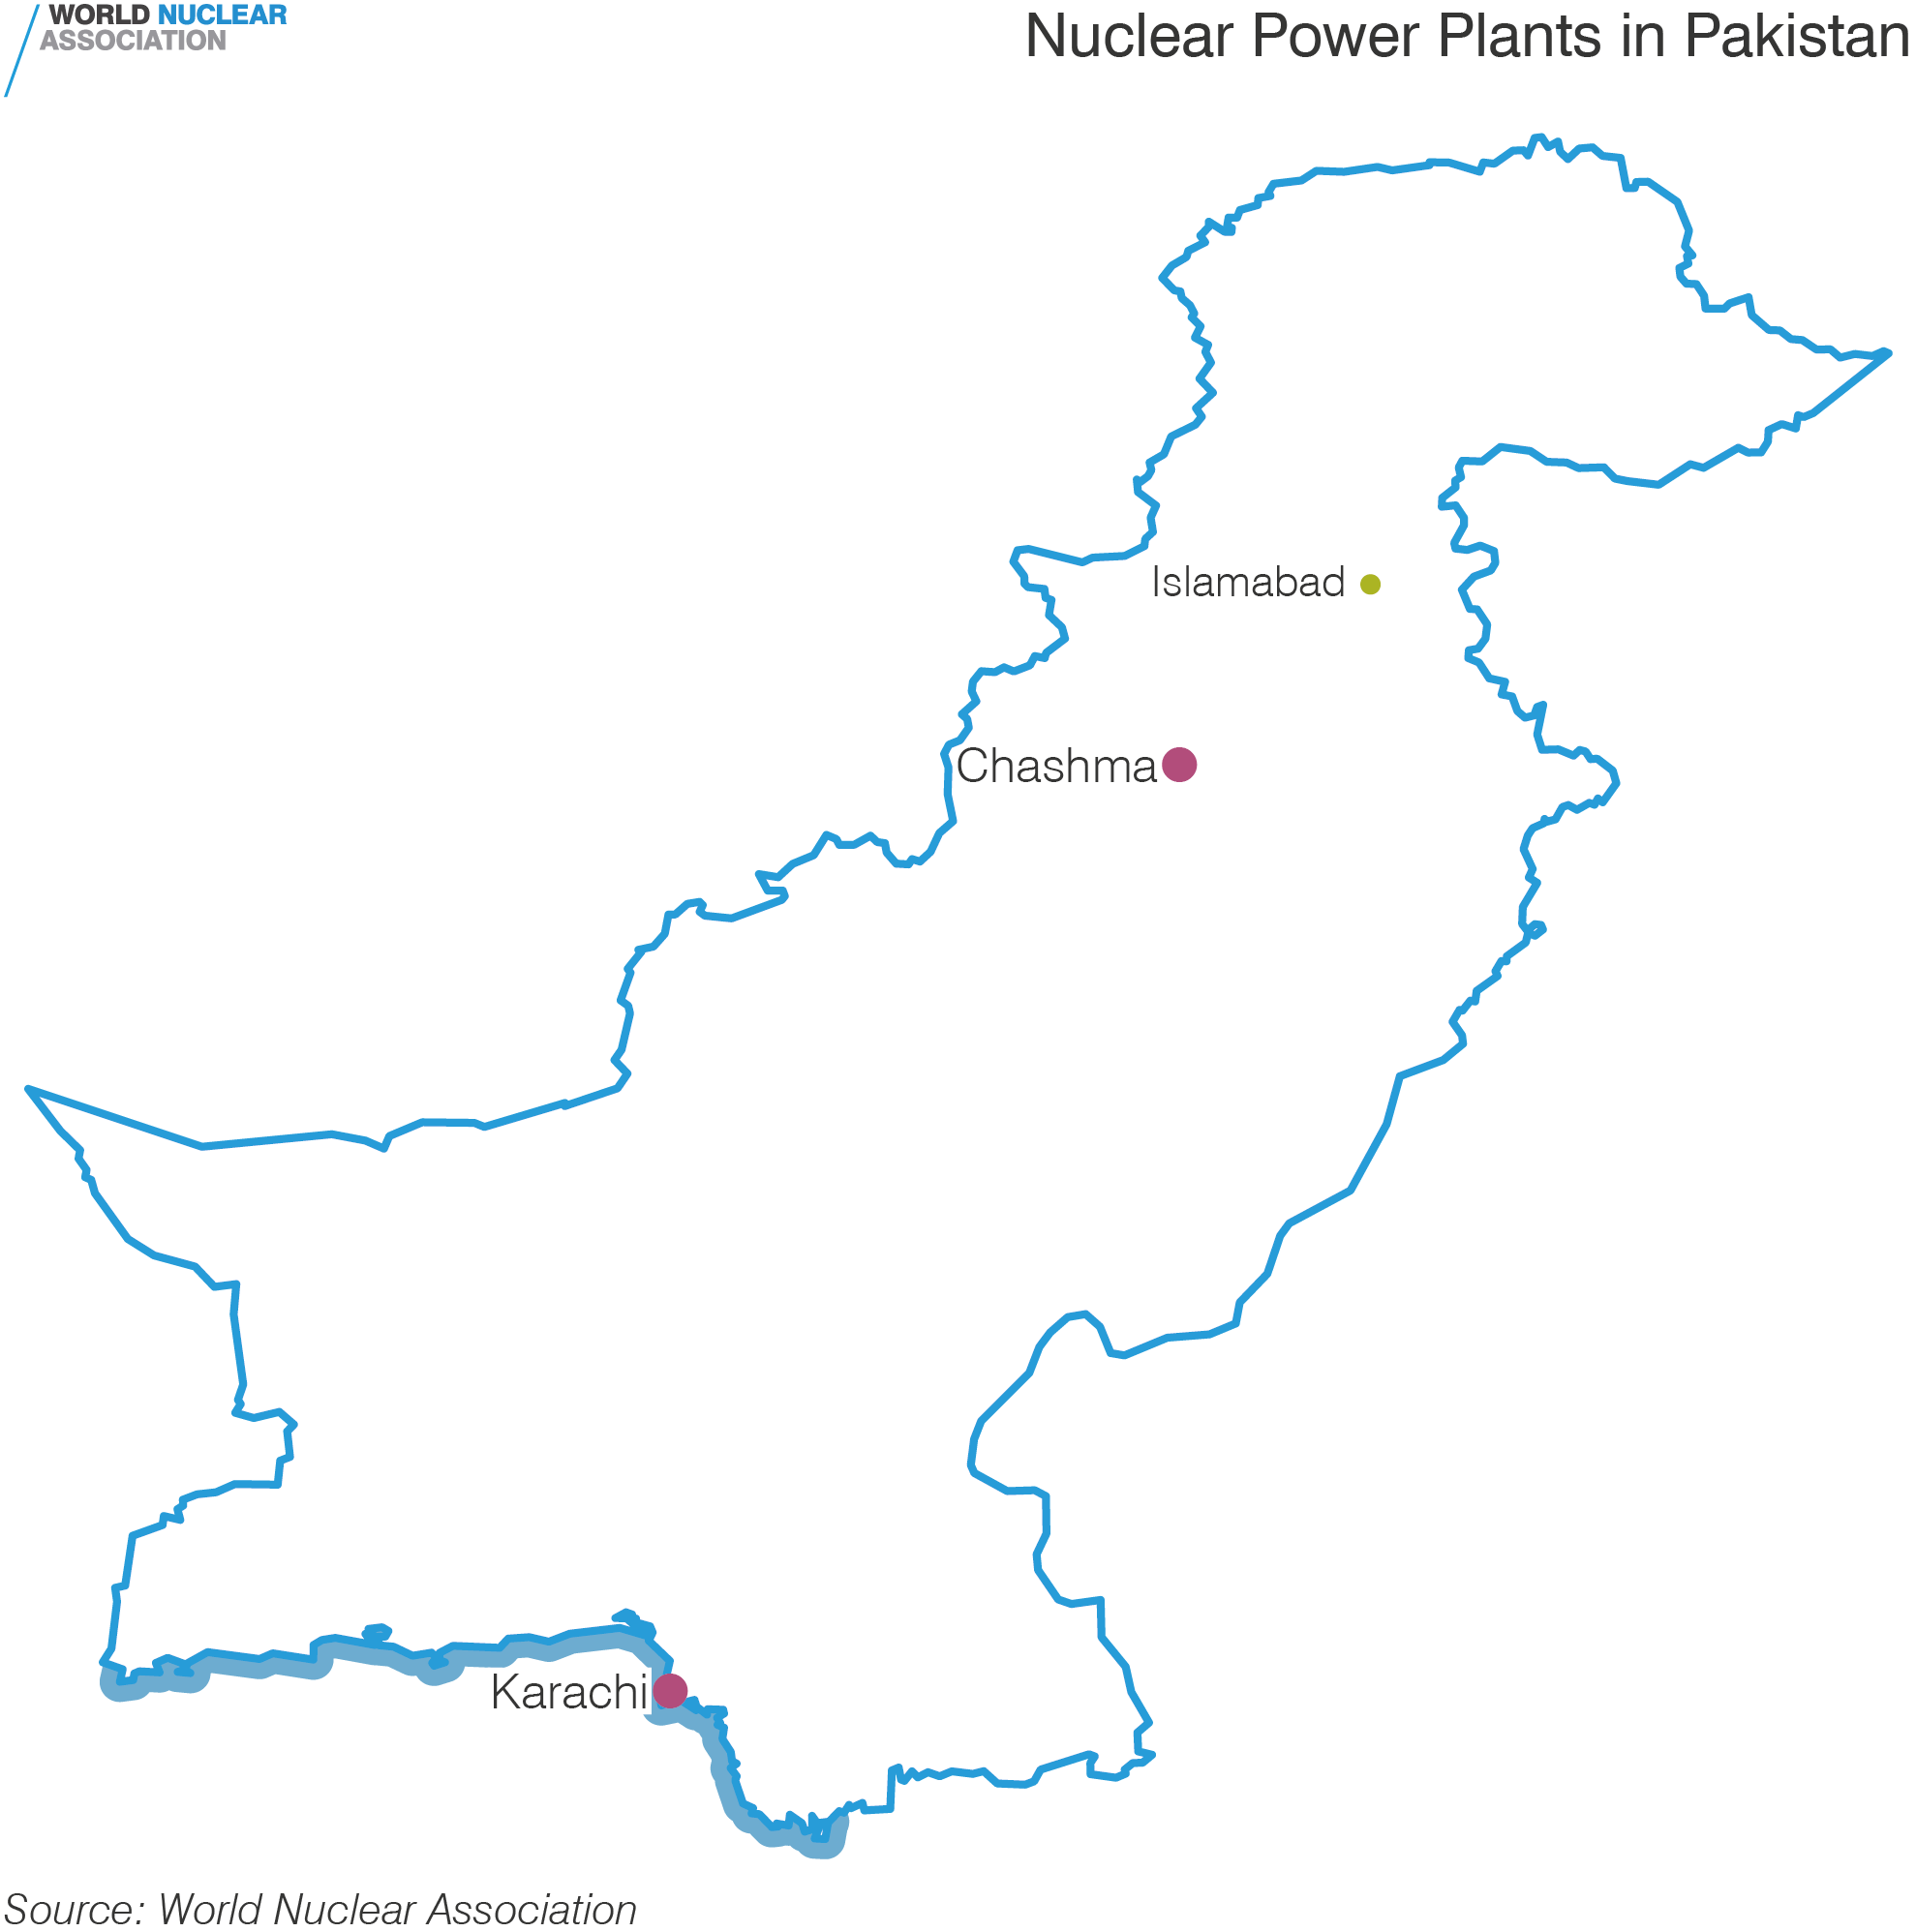 Nuclear Power Plants in Pakistan